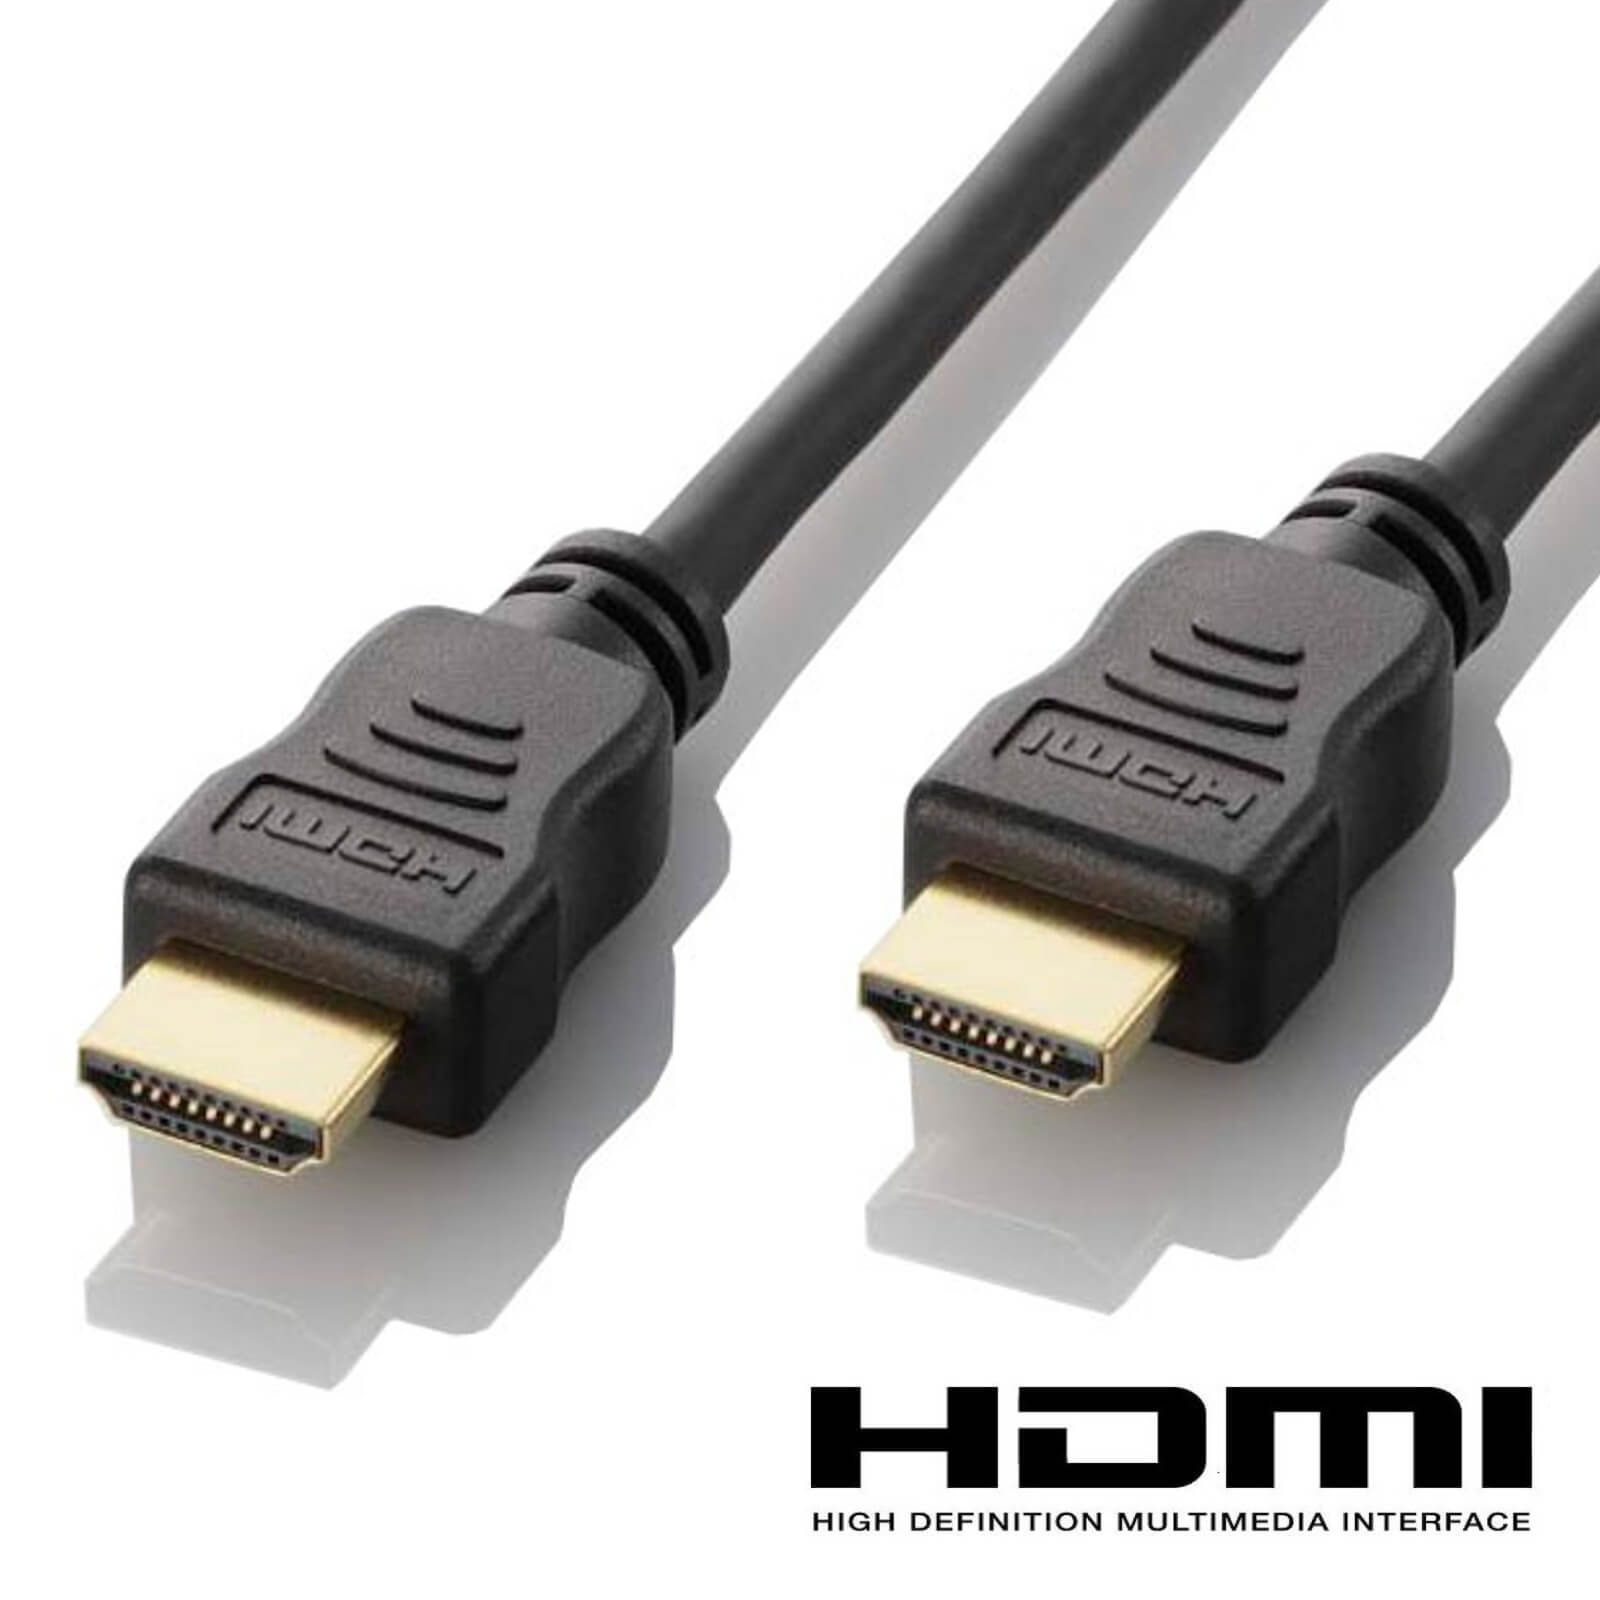 Cable Hd Content : Lenovo y hdmi to k ultra hd tv m